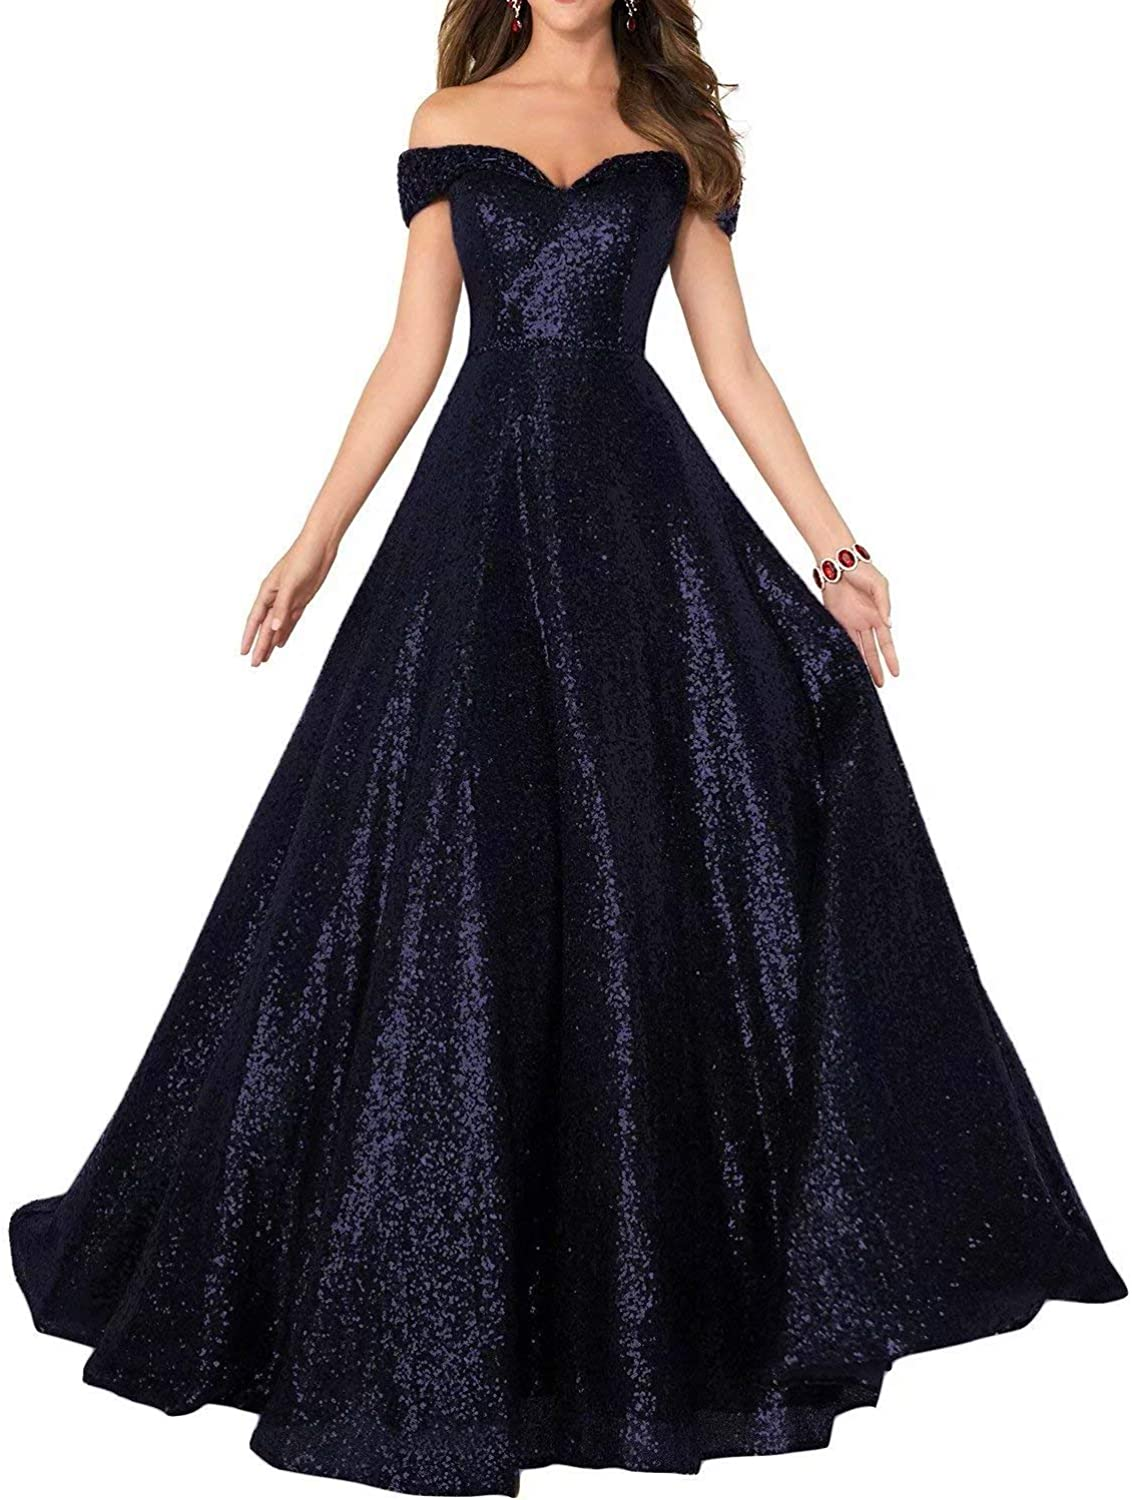 EEFZL Women's Off Shoulder Sequin Prom Dress Long Beaded Evening Party Ball Gown